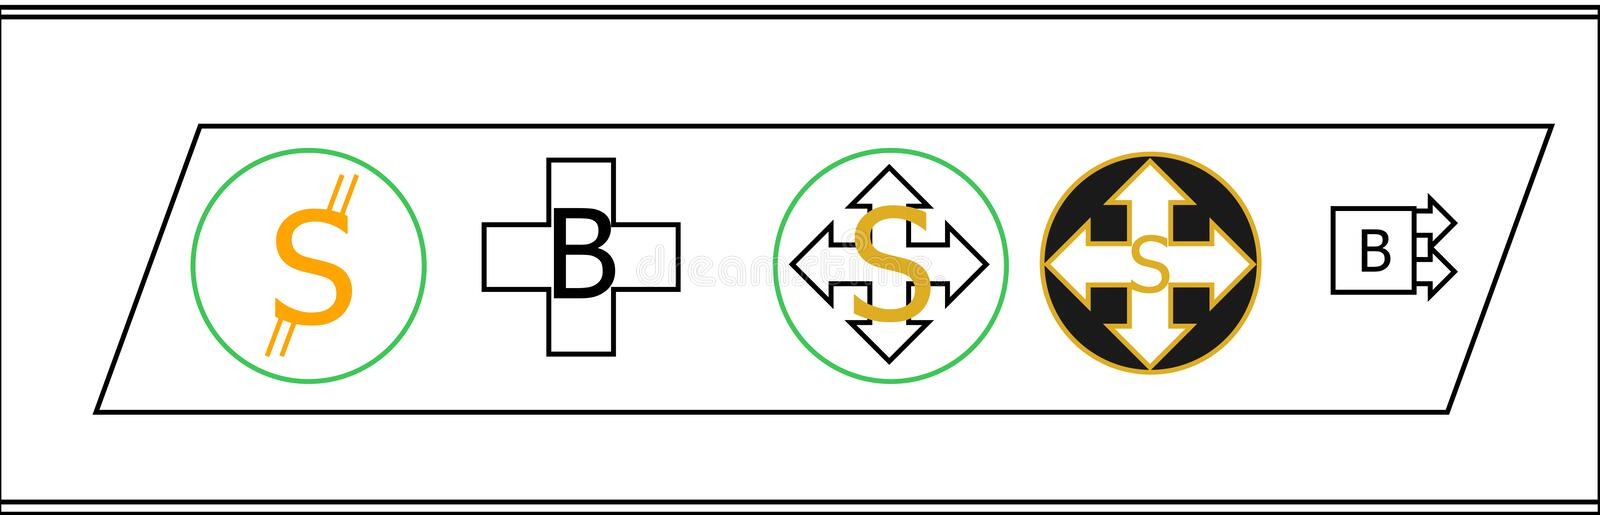 Five new cryptocurrency coin logo royalty free stock images